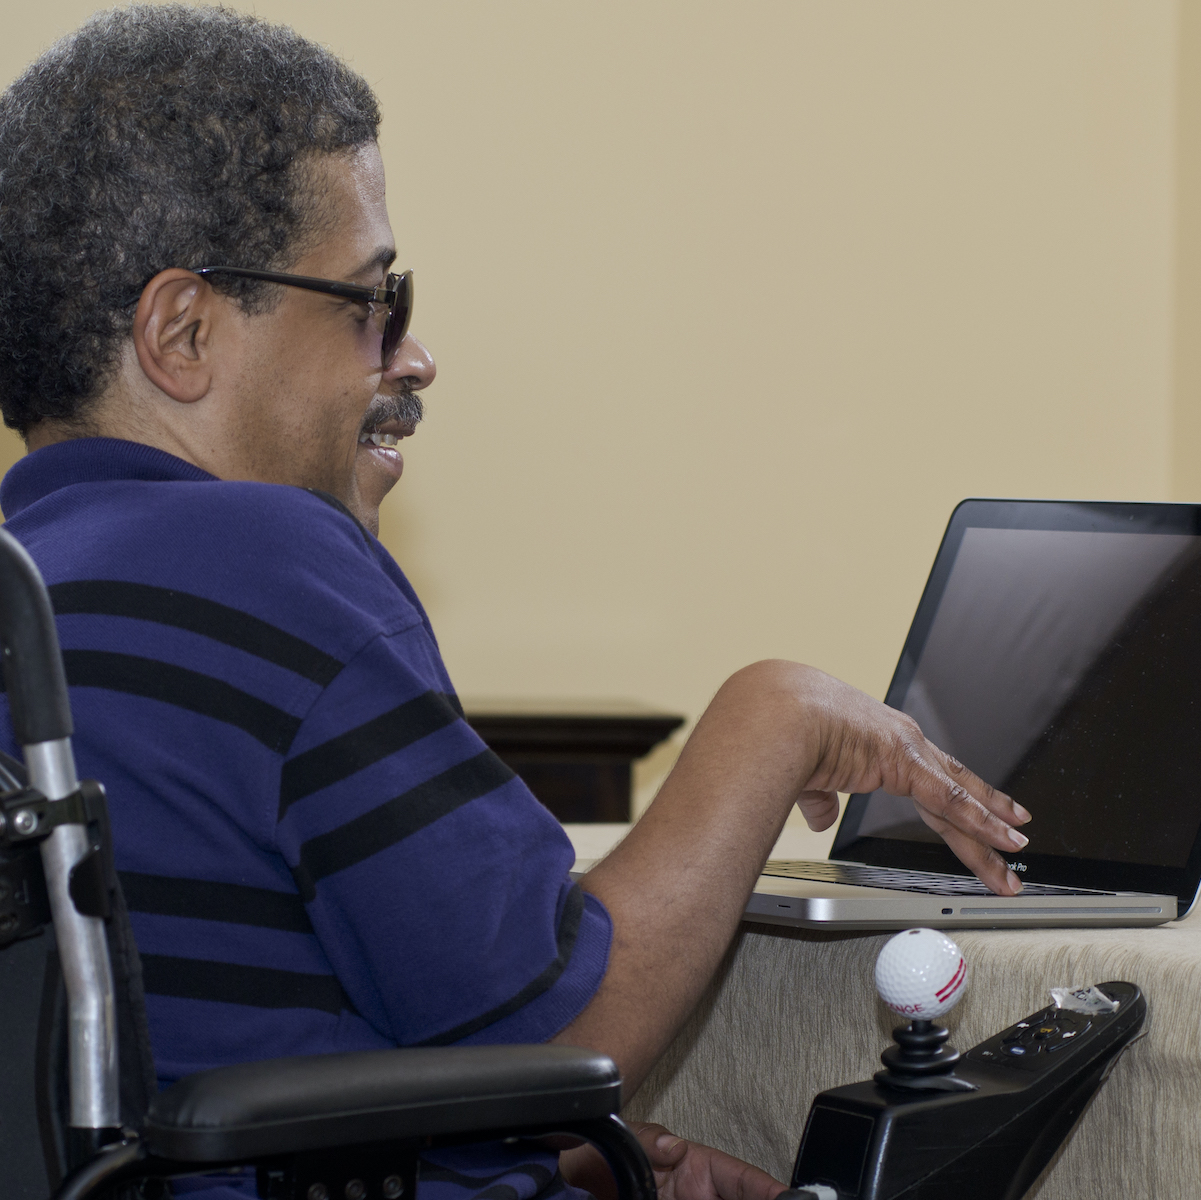 A man wearing sunglasses sits in a power wheelchair at a table while using a laptop computer.